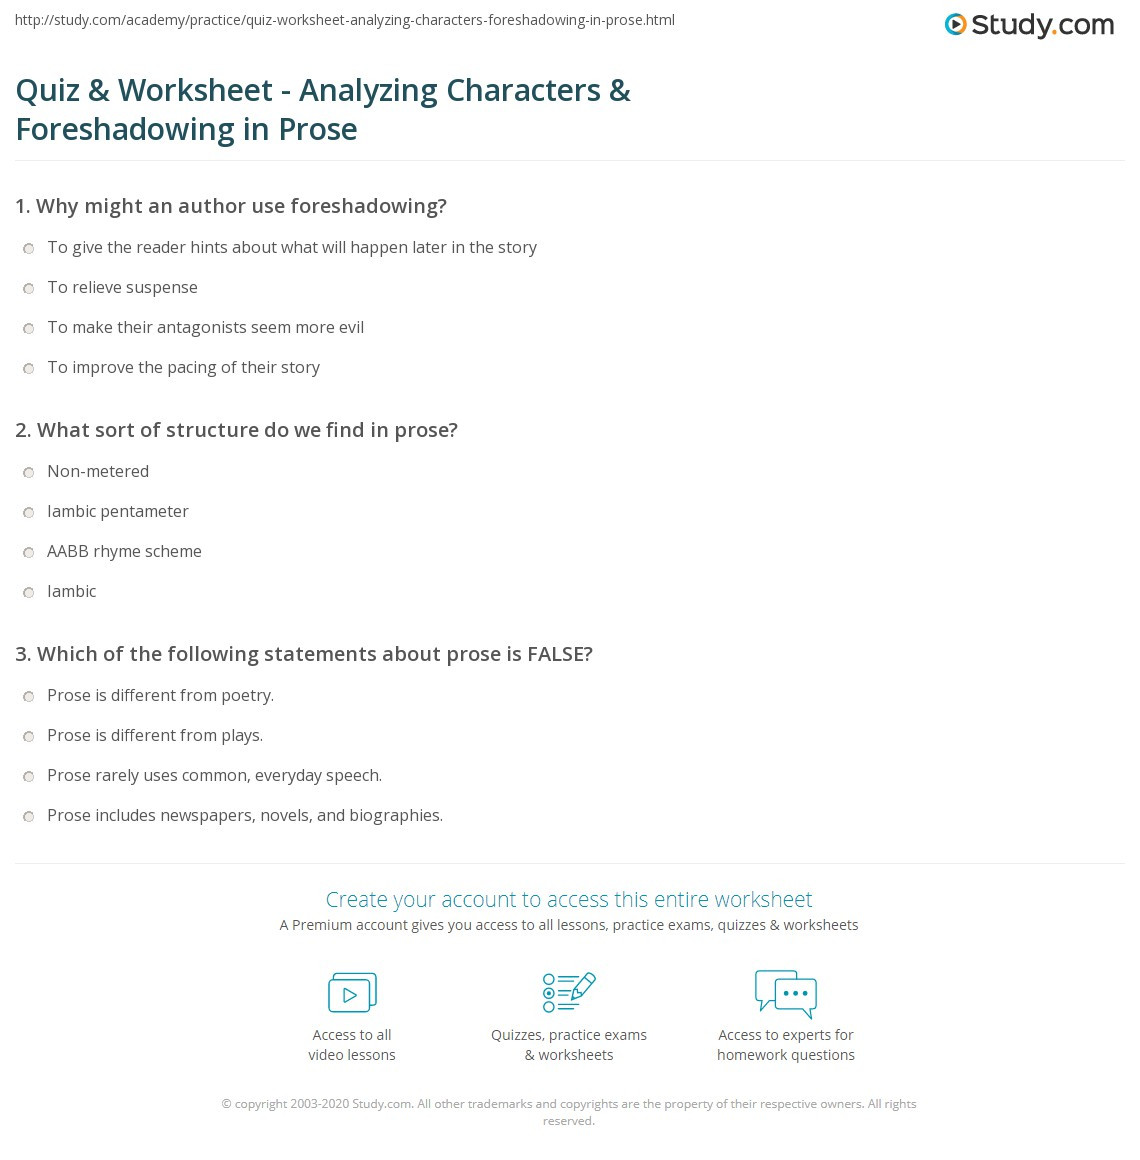 Foreshadowing Worksheet Middle School Quiz & Worksheet Analyzing Characters & foreshadowing In